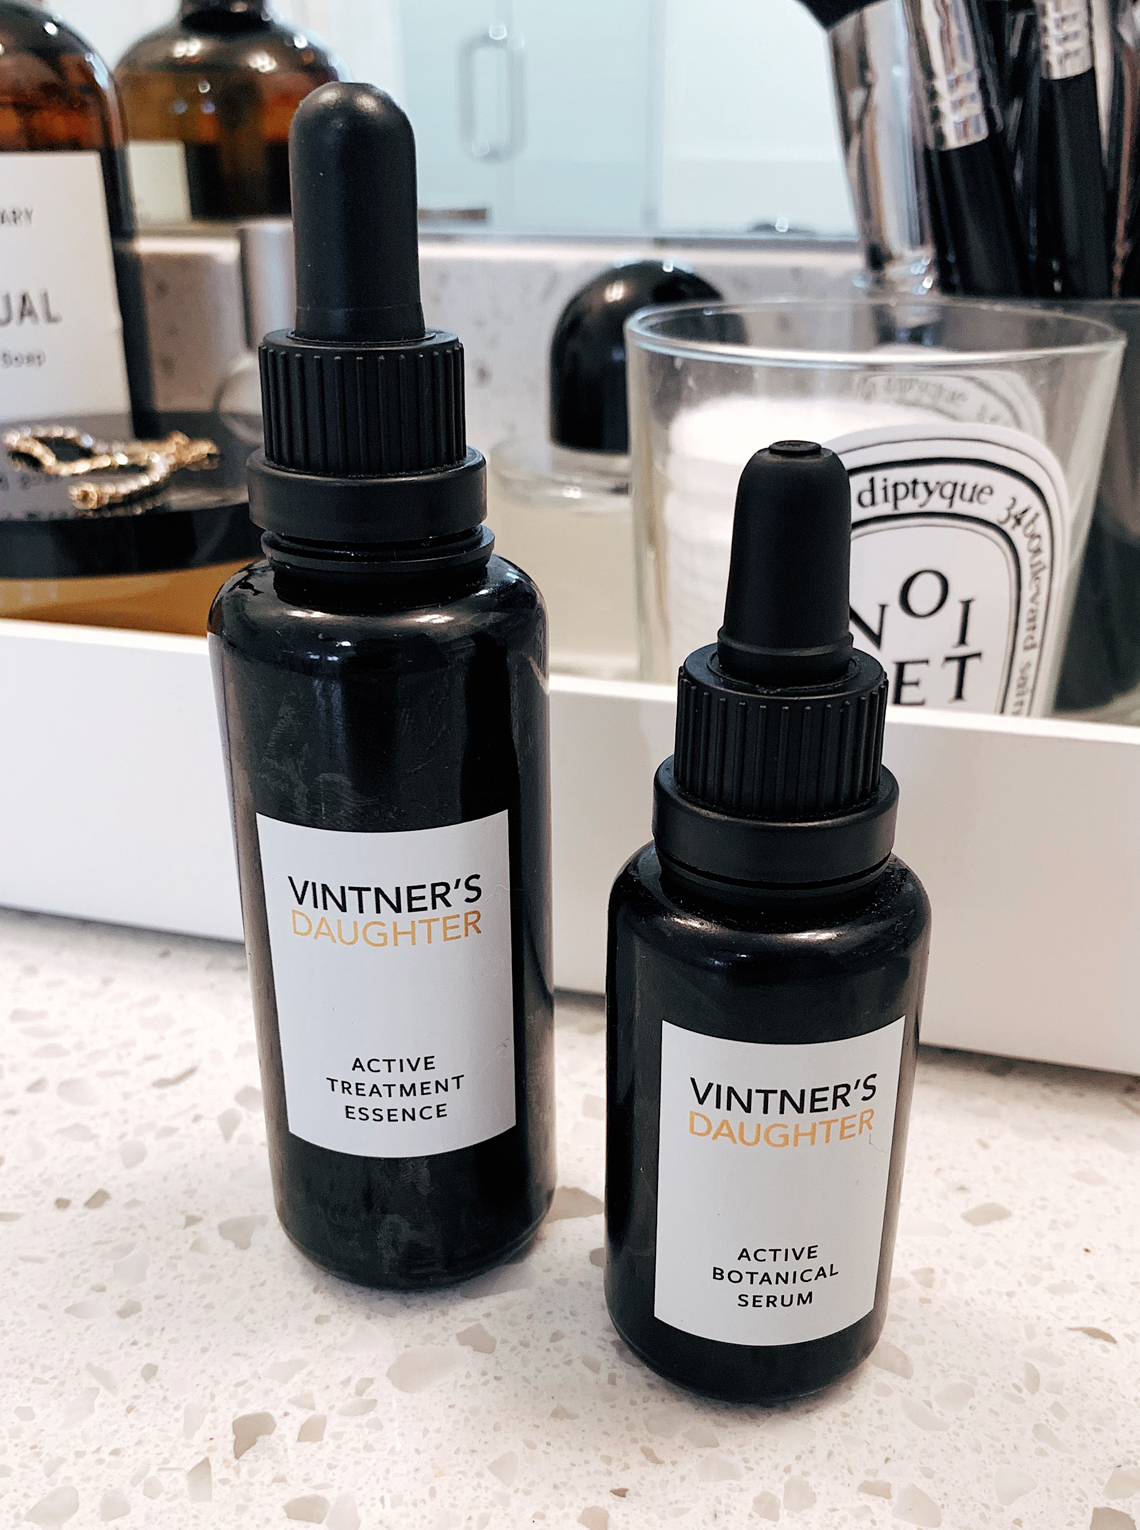 Vitners Daughter Essence Botanical Serum